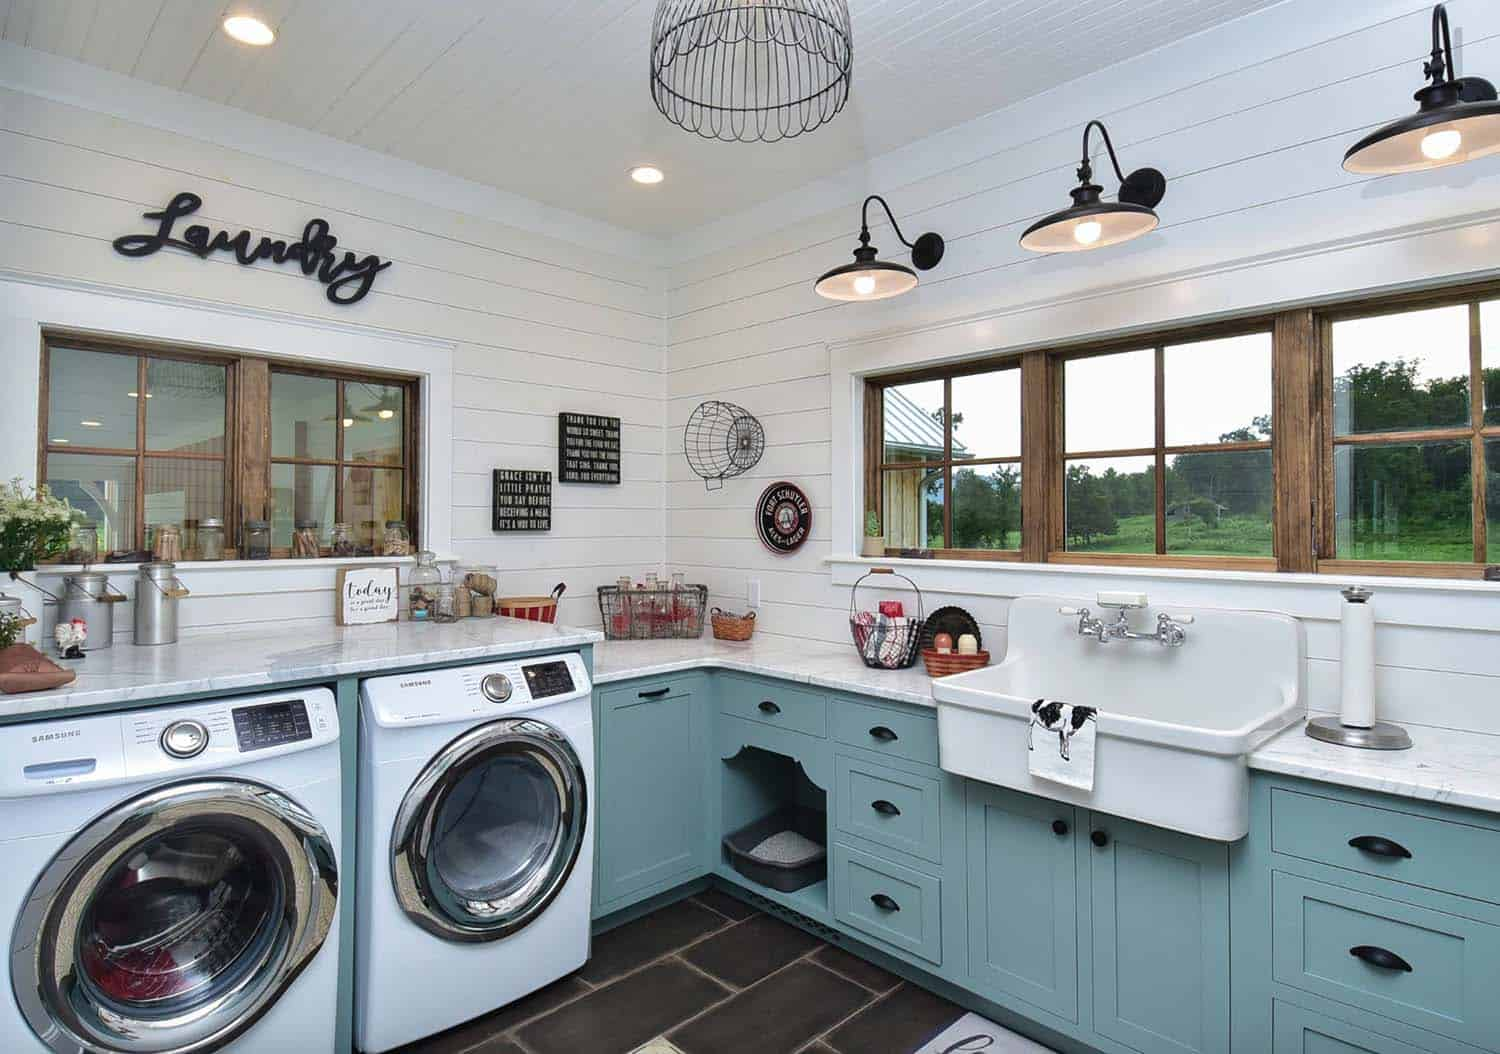 45 Functional And Stylish Laundry Room Design Ideas To Inspire